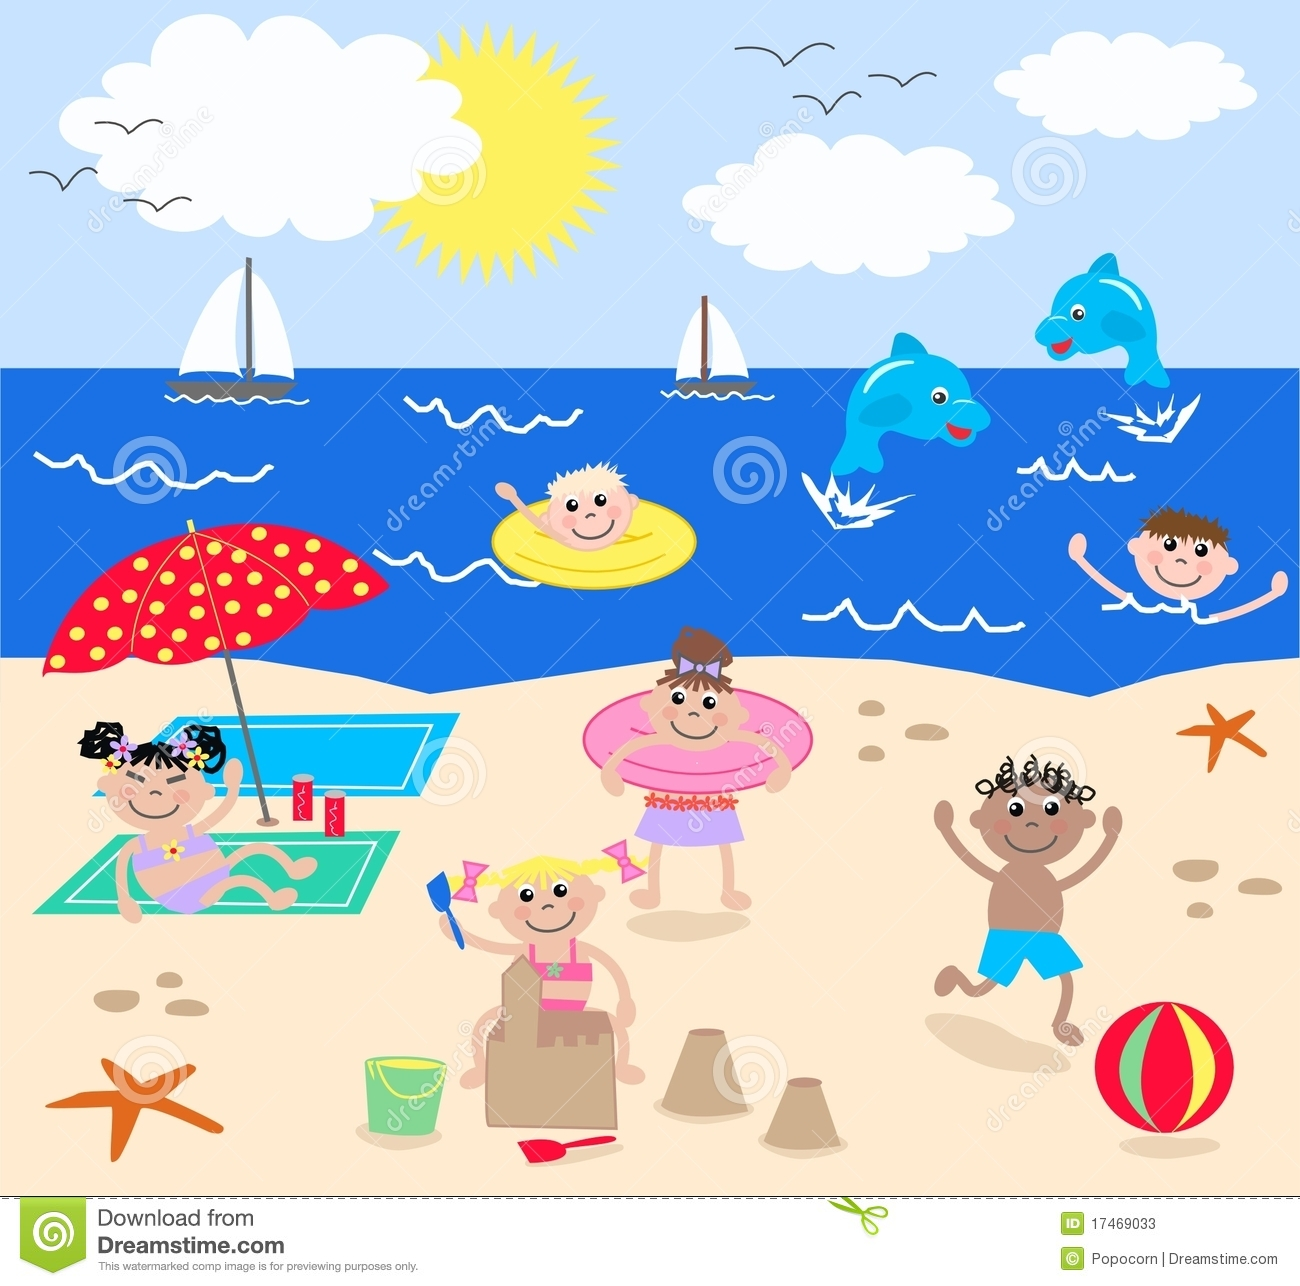 Kids Beach Clip Art Clipart kids aKids Playing On The Beach Clipart